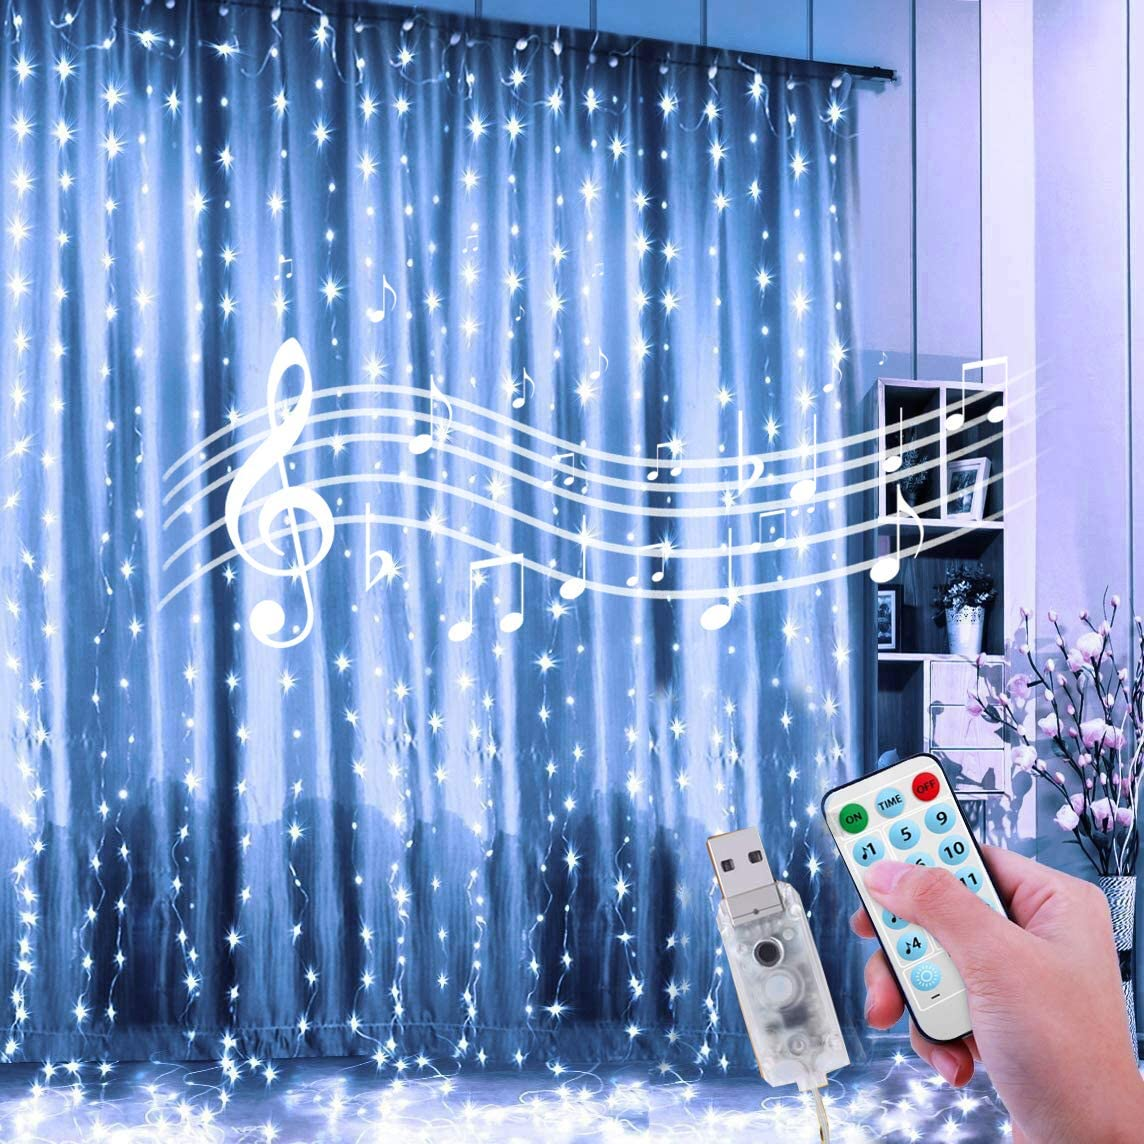 24HOCL Curtain String Lights, 12 Lightning Modes USB Powered Fairy Lights String with Sound Activated & Timer Function for Bedroom Wedding Party Youtuber Backdrop Outdoor Indoor Decor (Cold White)